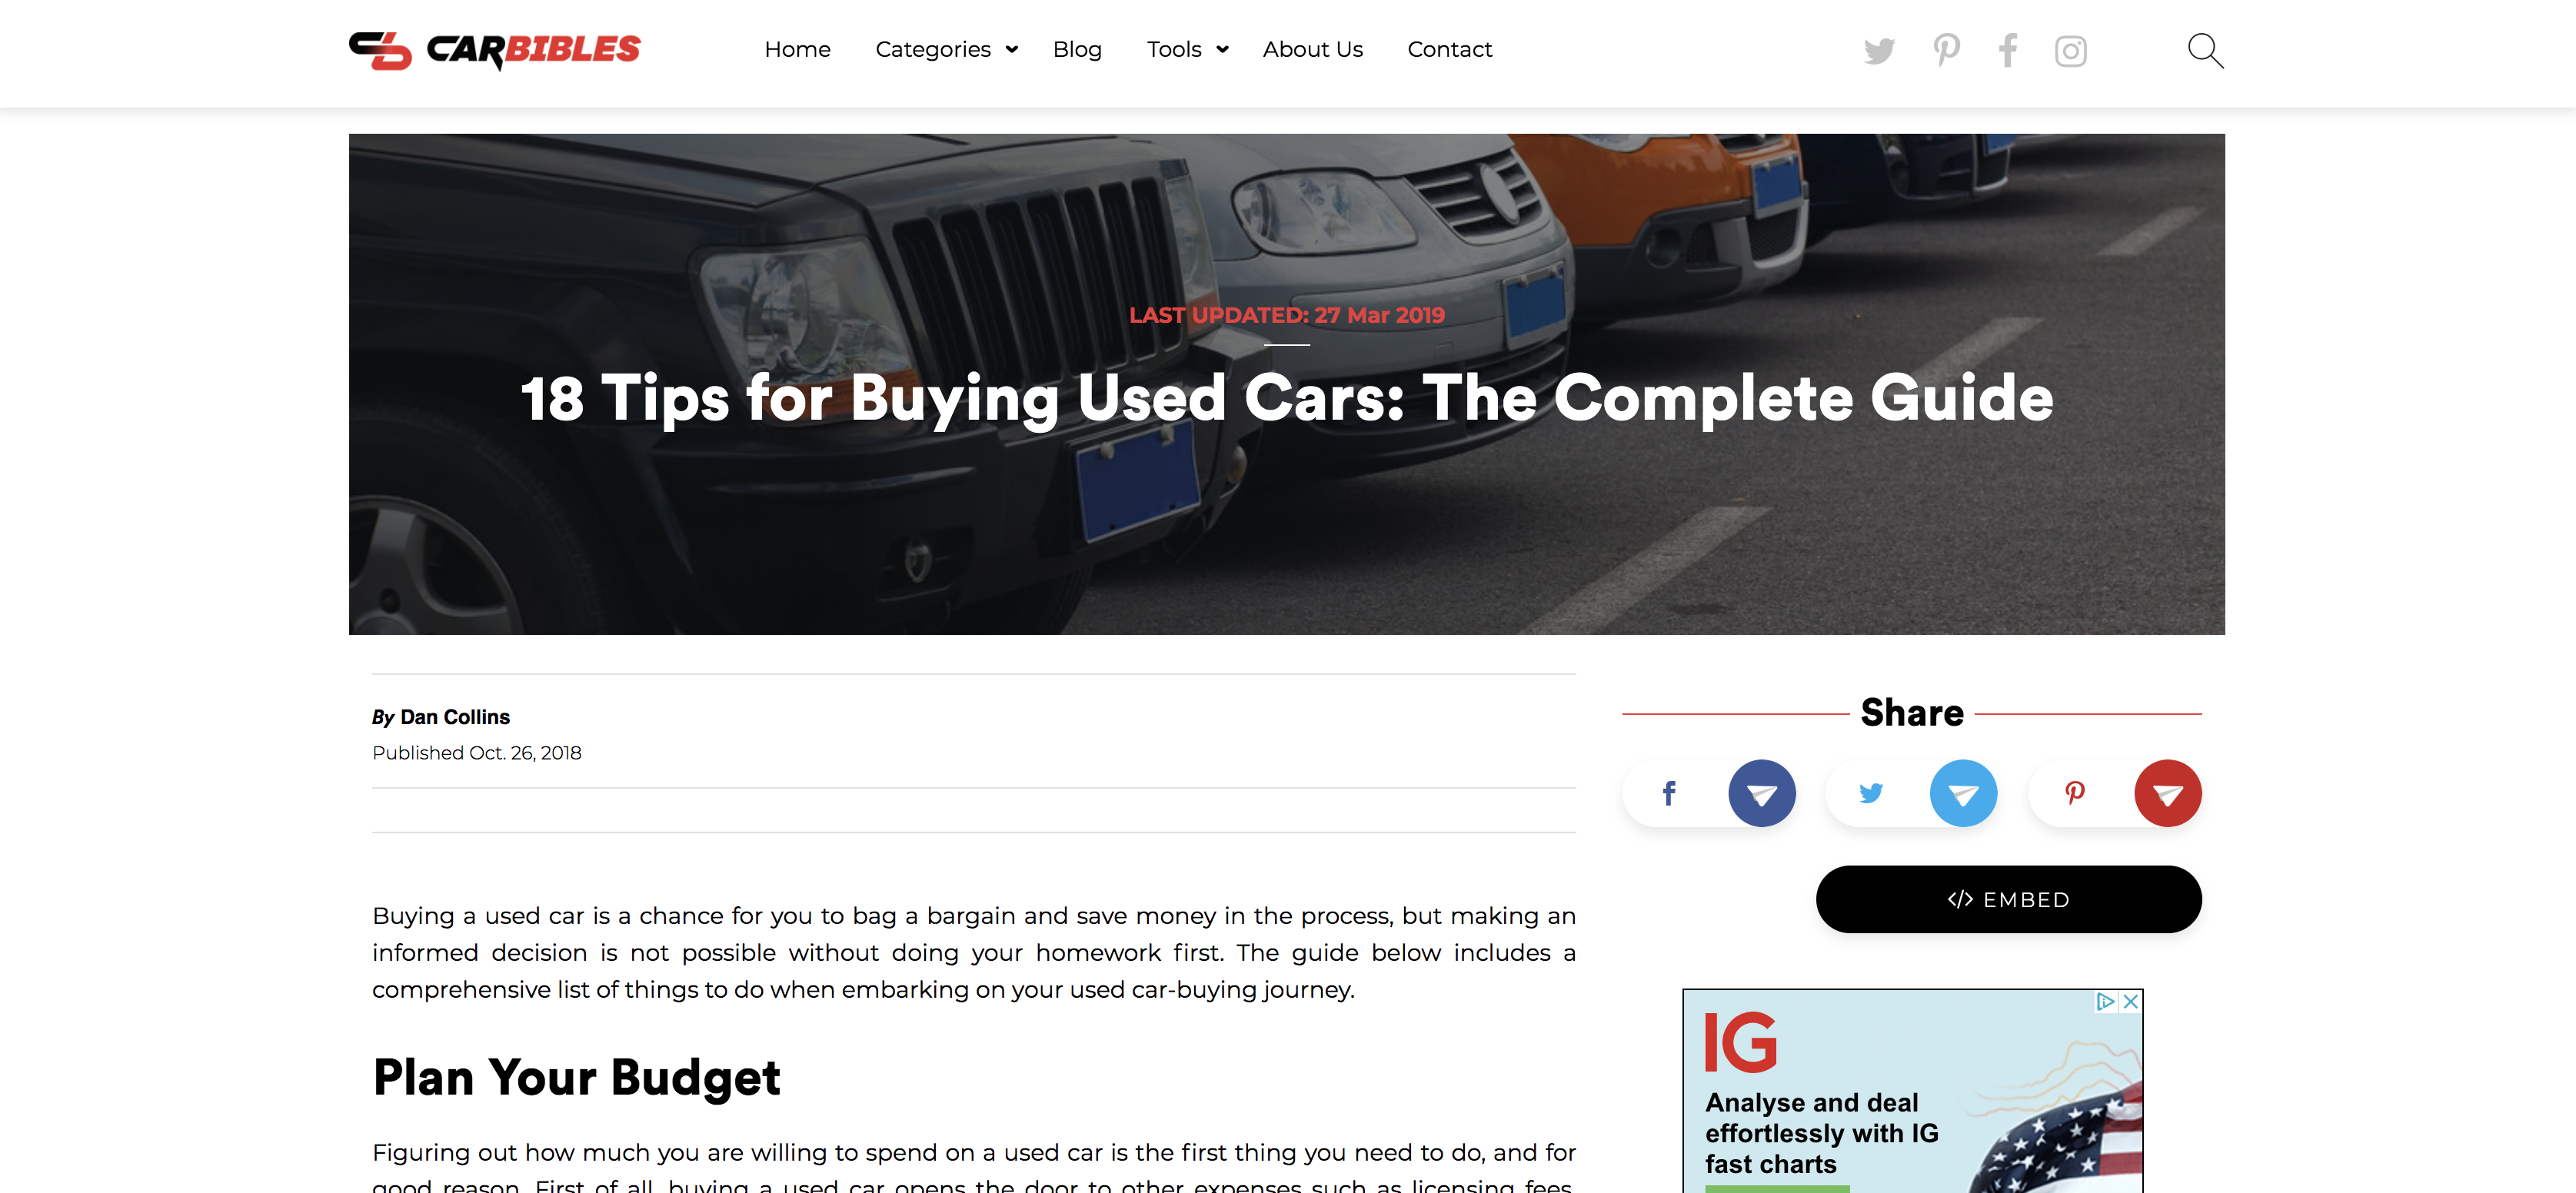 Car Bibles Buying Used Cars Tips